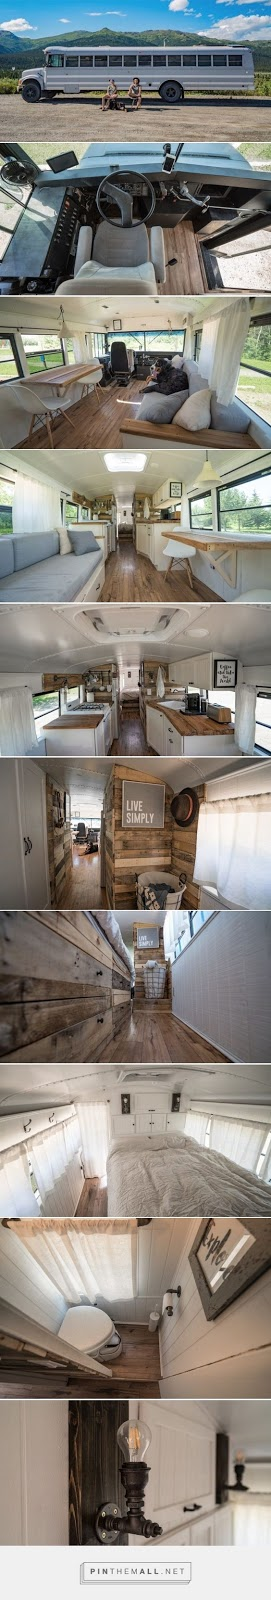 Converted Bus With Images Tiny House Blog House On Wheels House